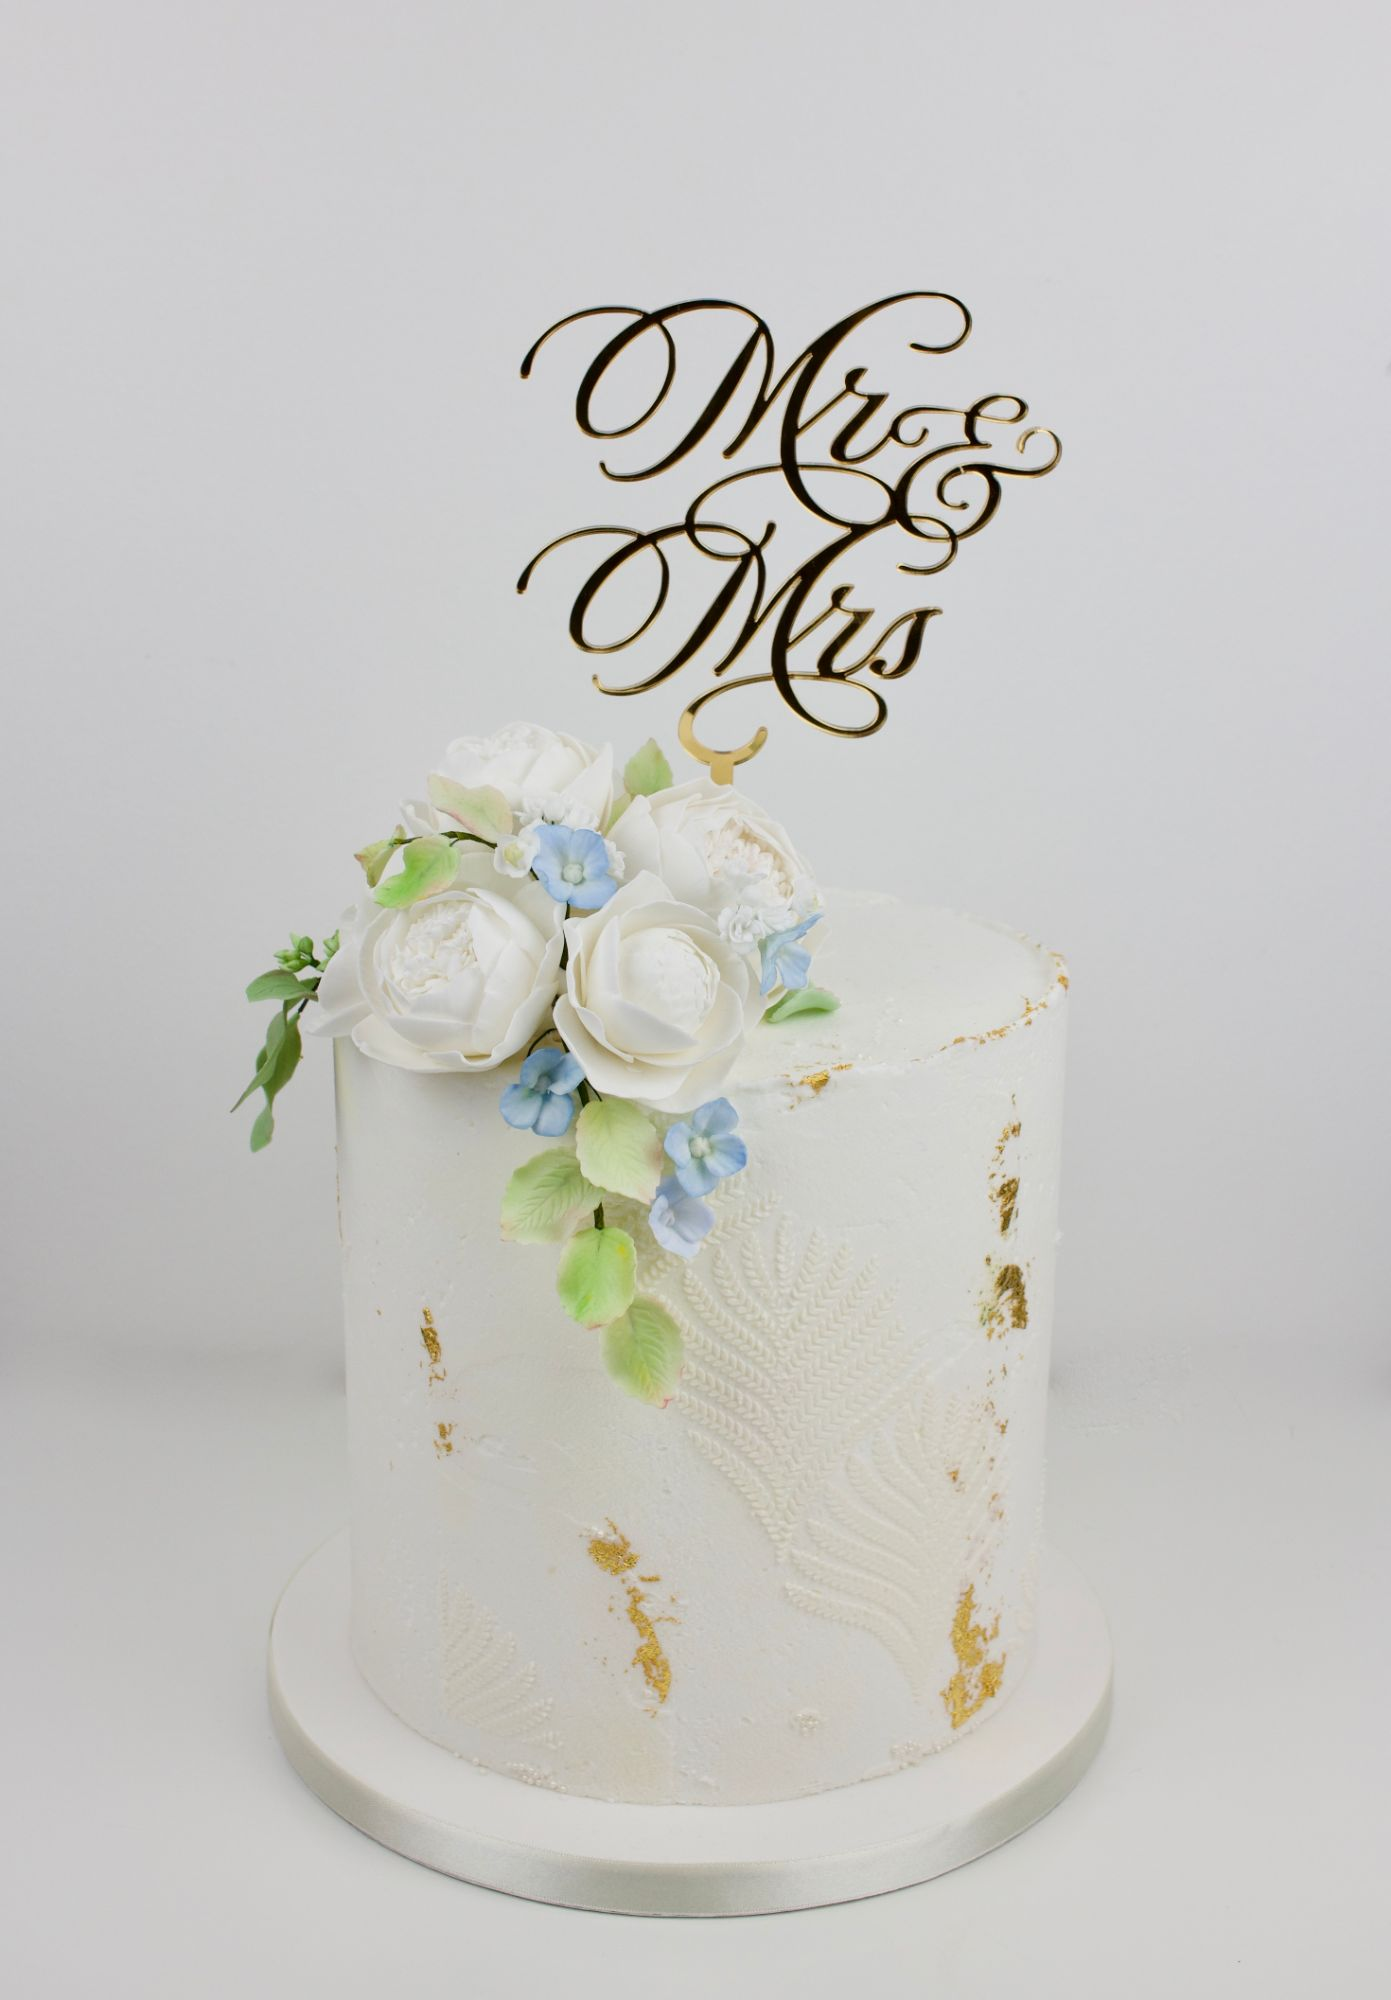 Double barrel buttercream modern design with harvest stencil and gold topper..